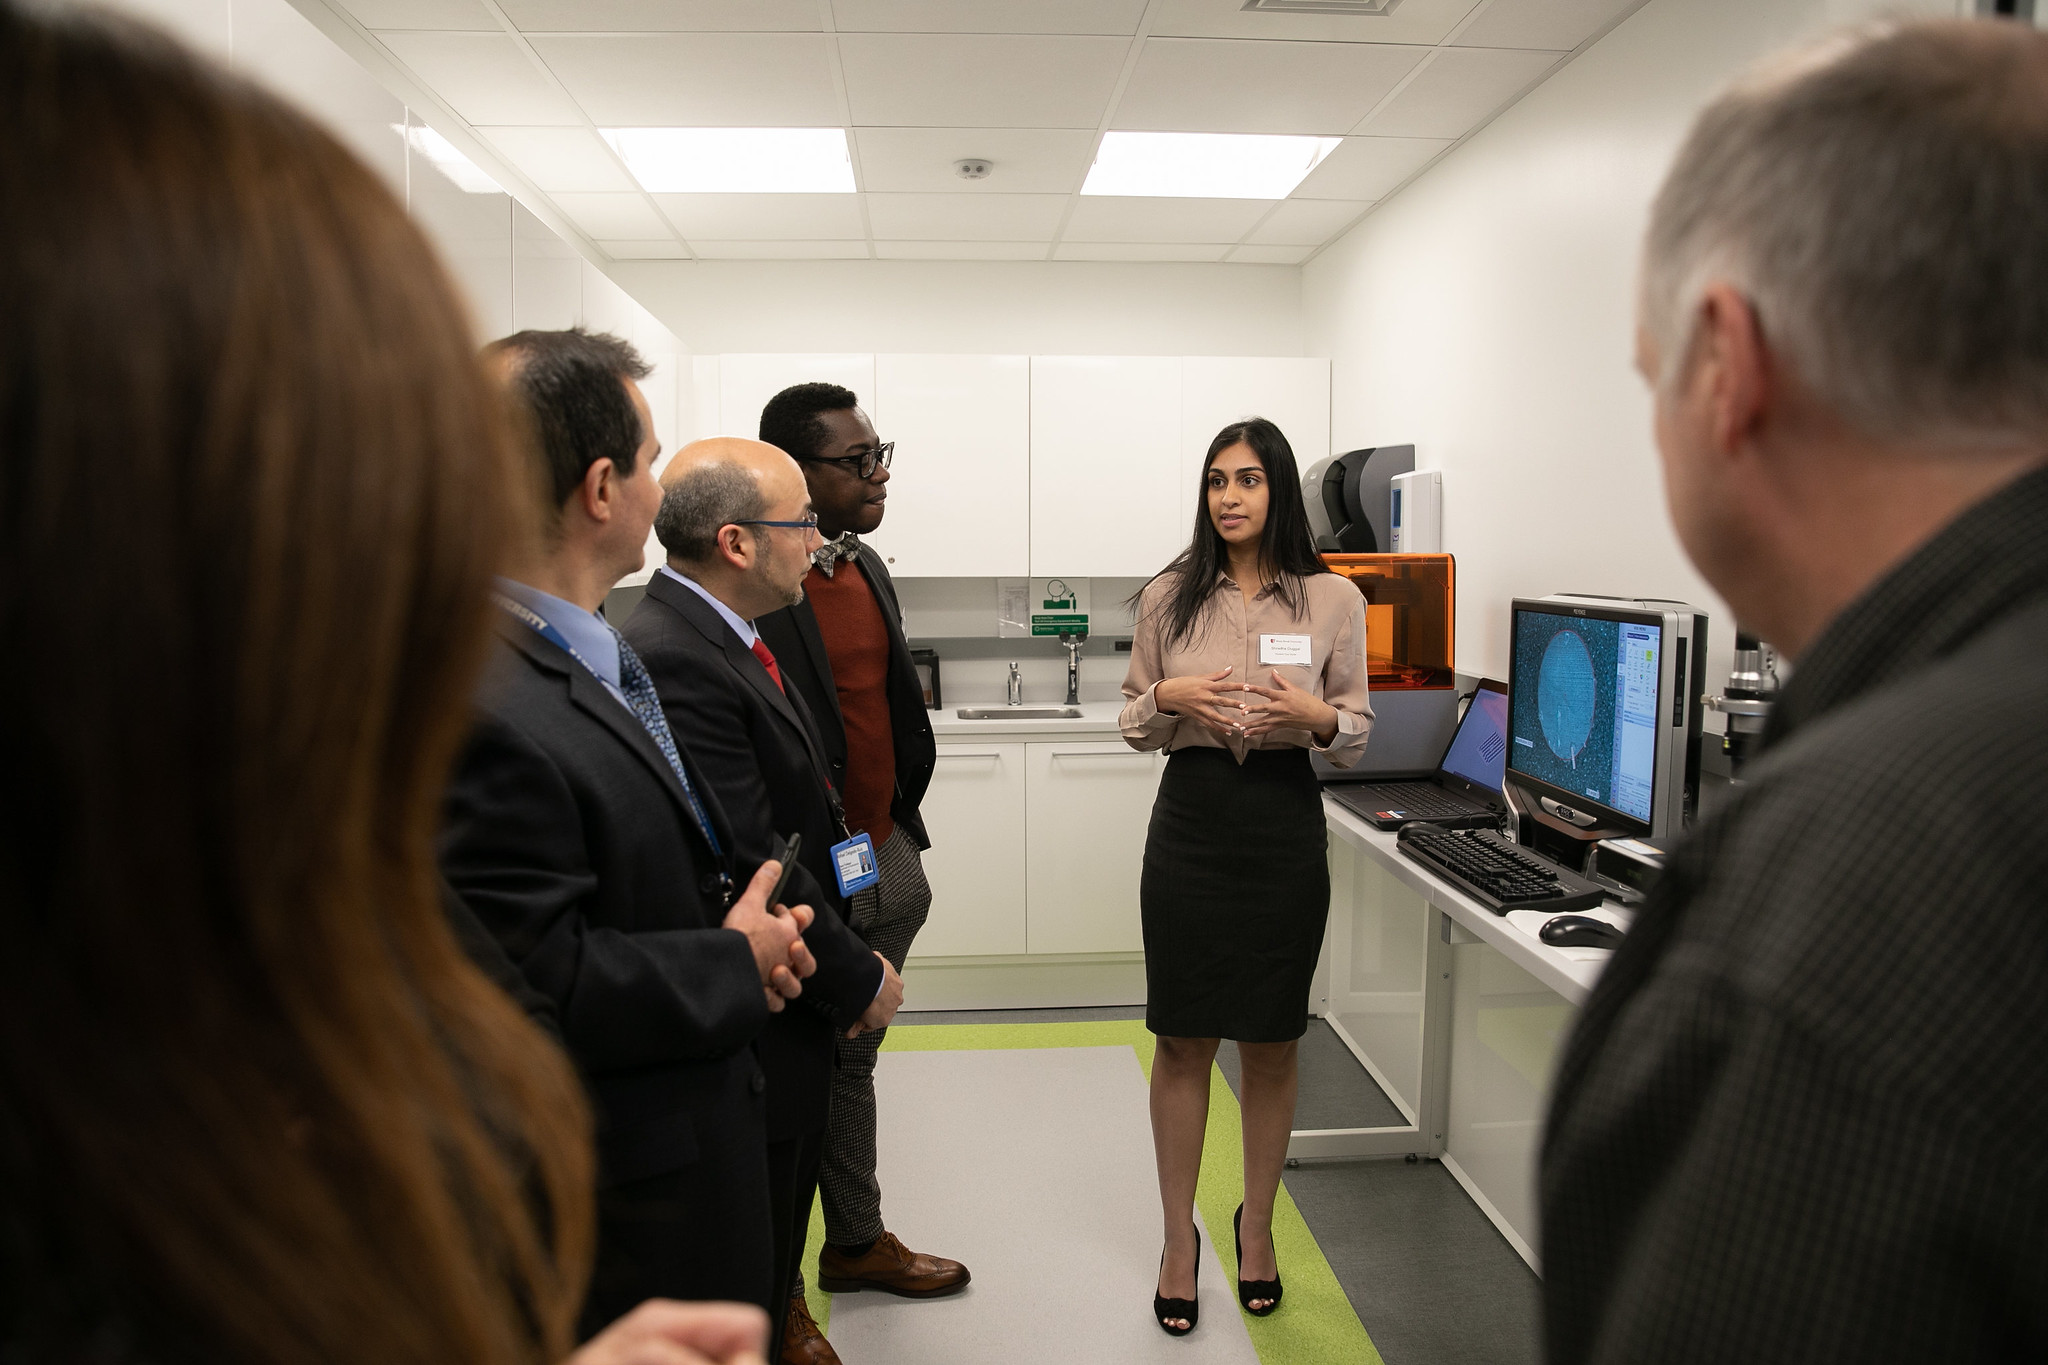 Stony Brook University School of Dental Medicine student Shradha Duggal explains her research in the Center for Implant and Digital Technology